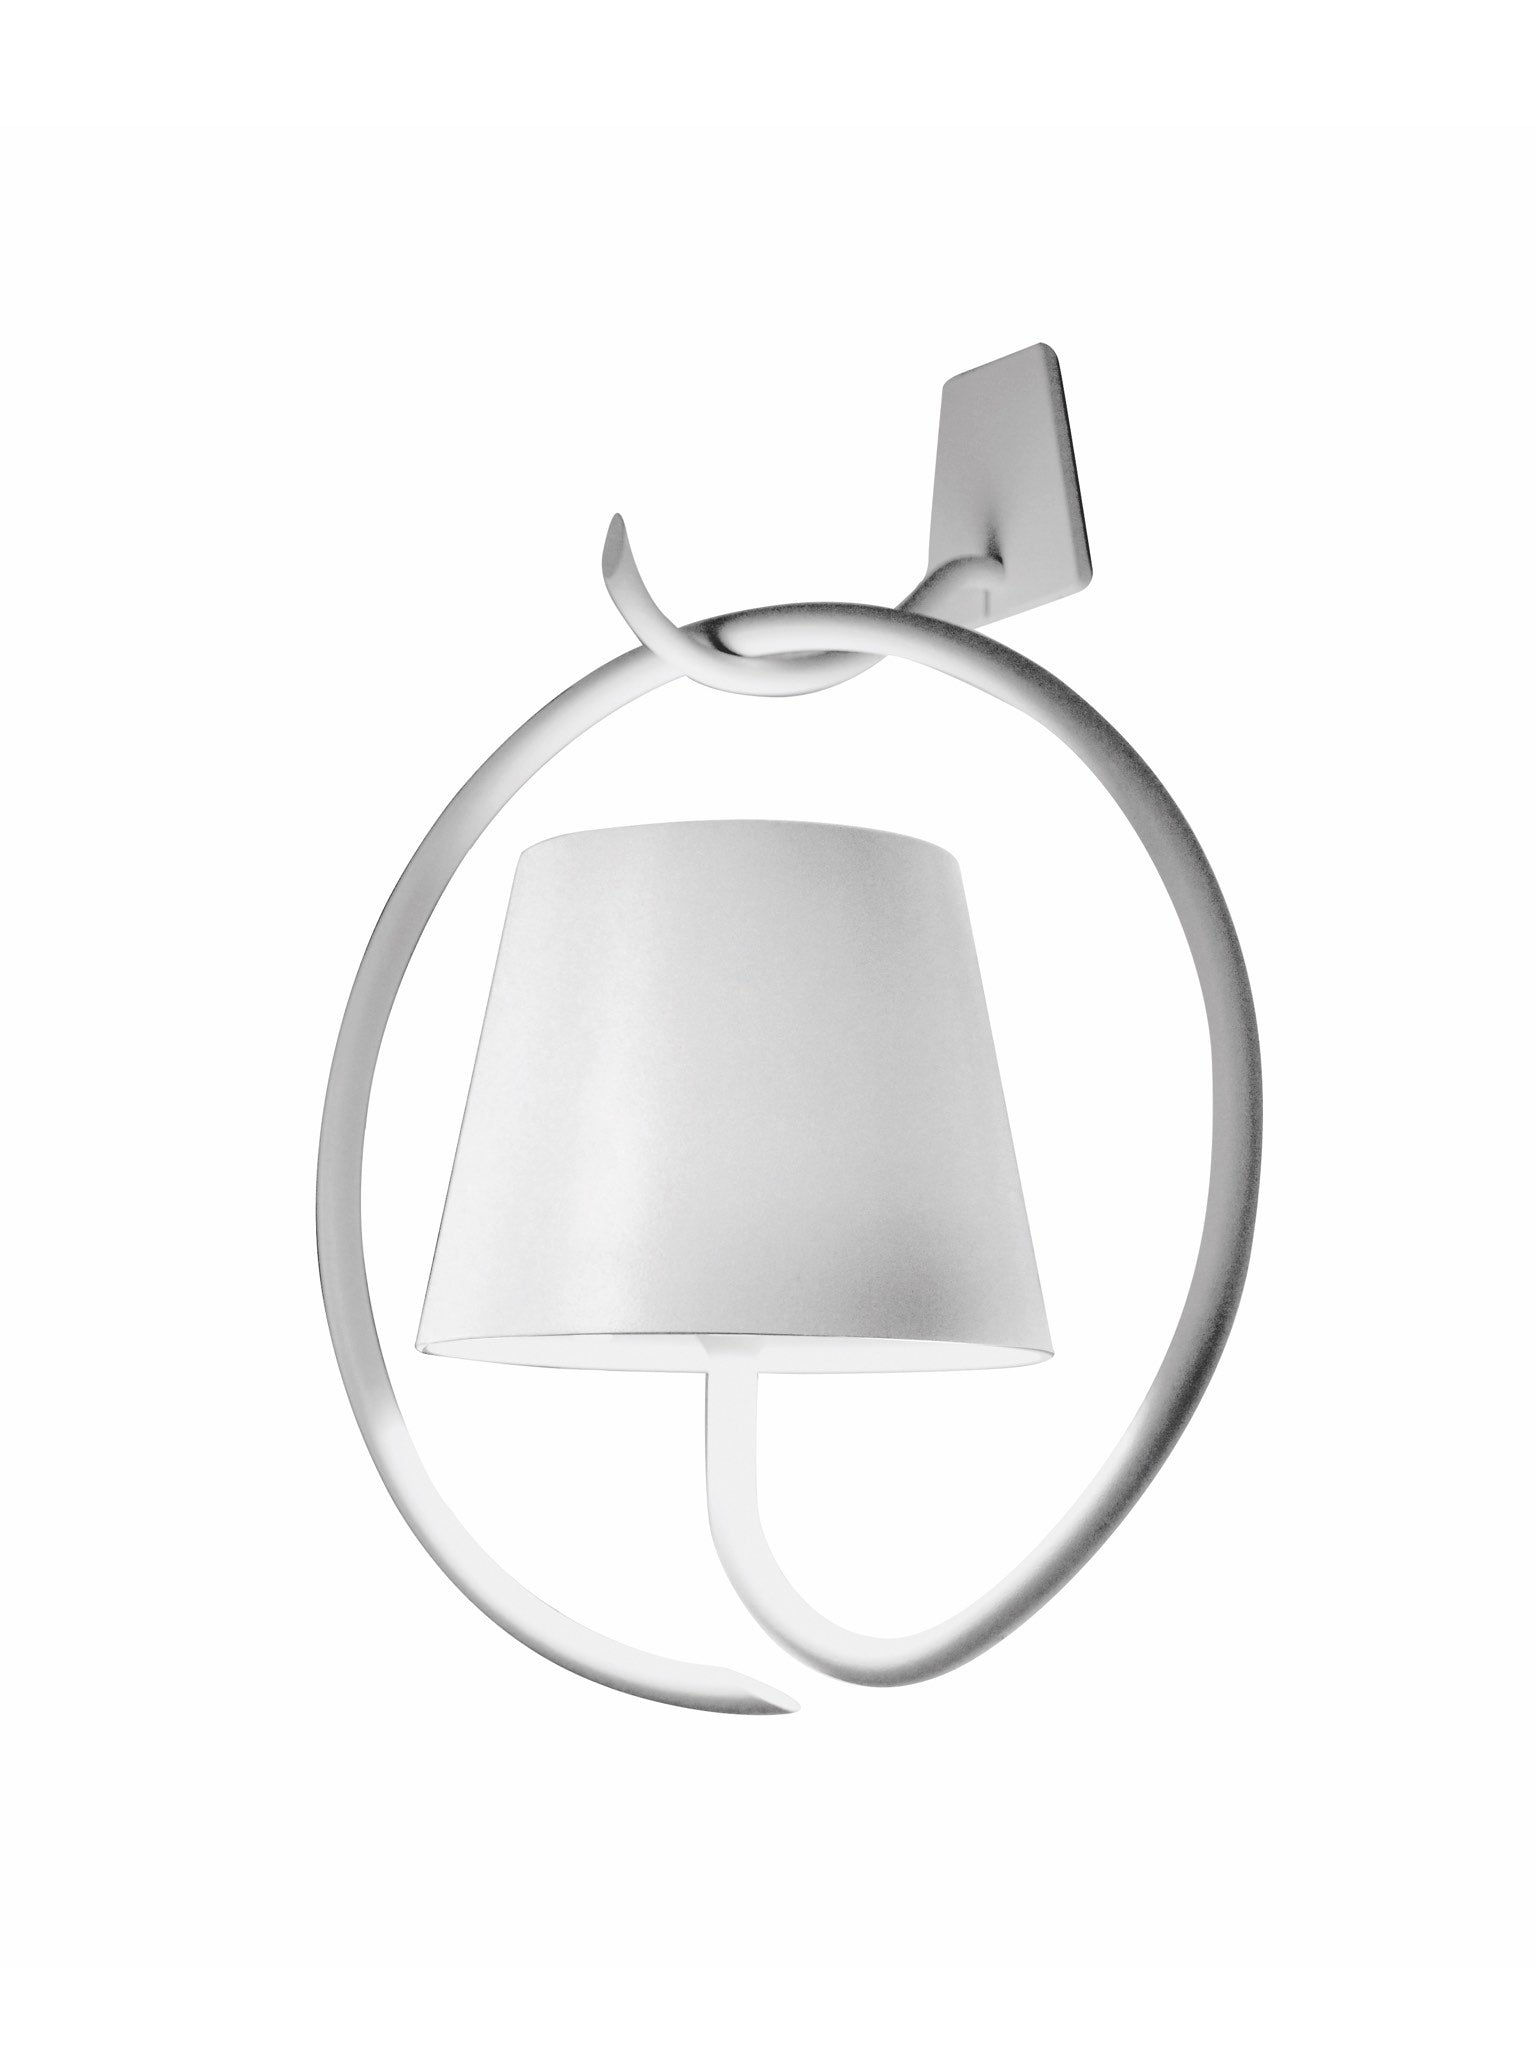 Poldina Wall Lamp W Bracket Zafferano America